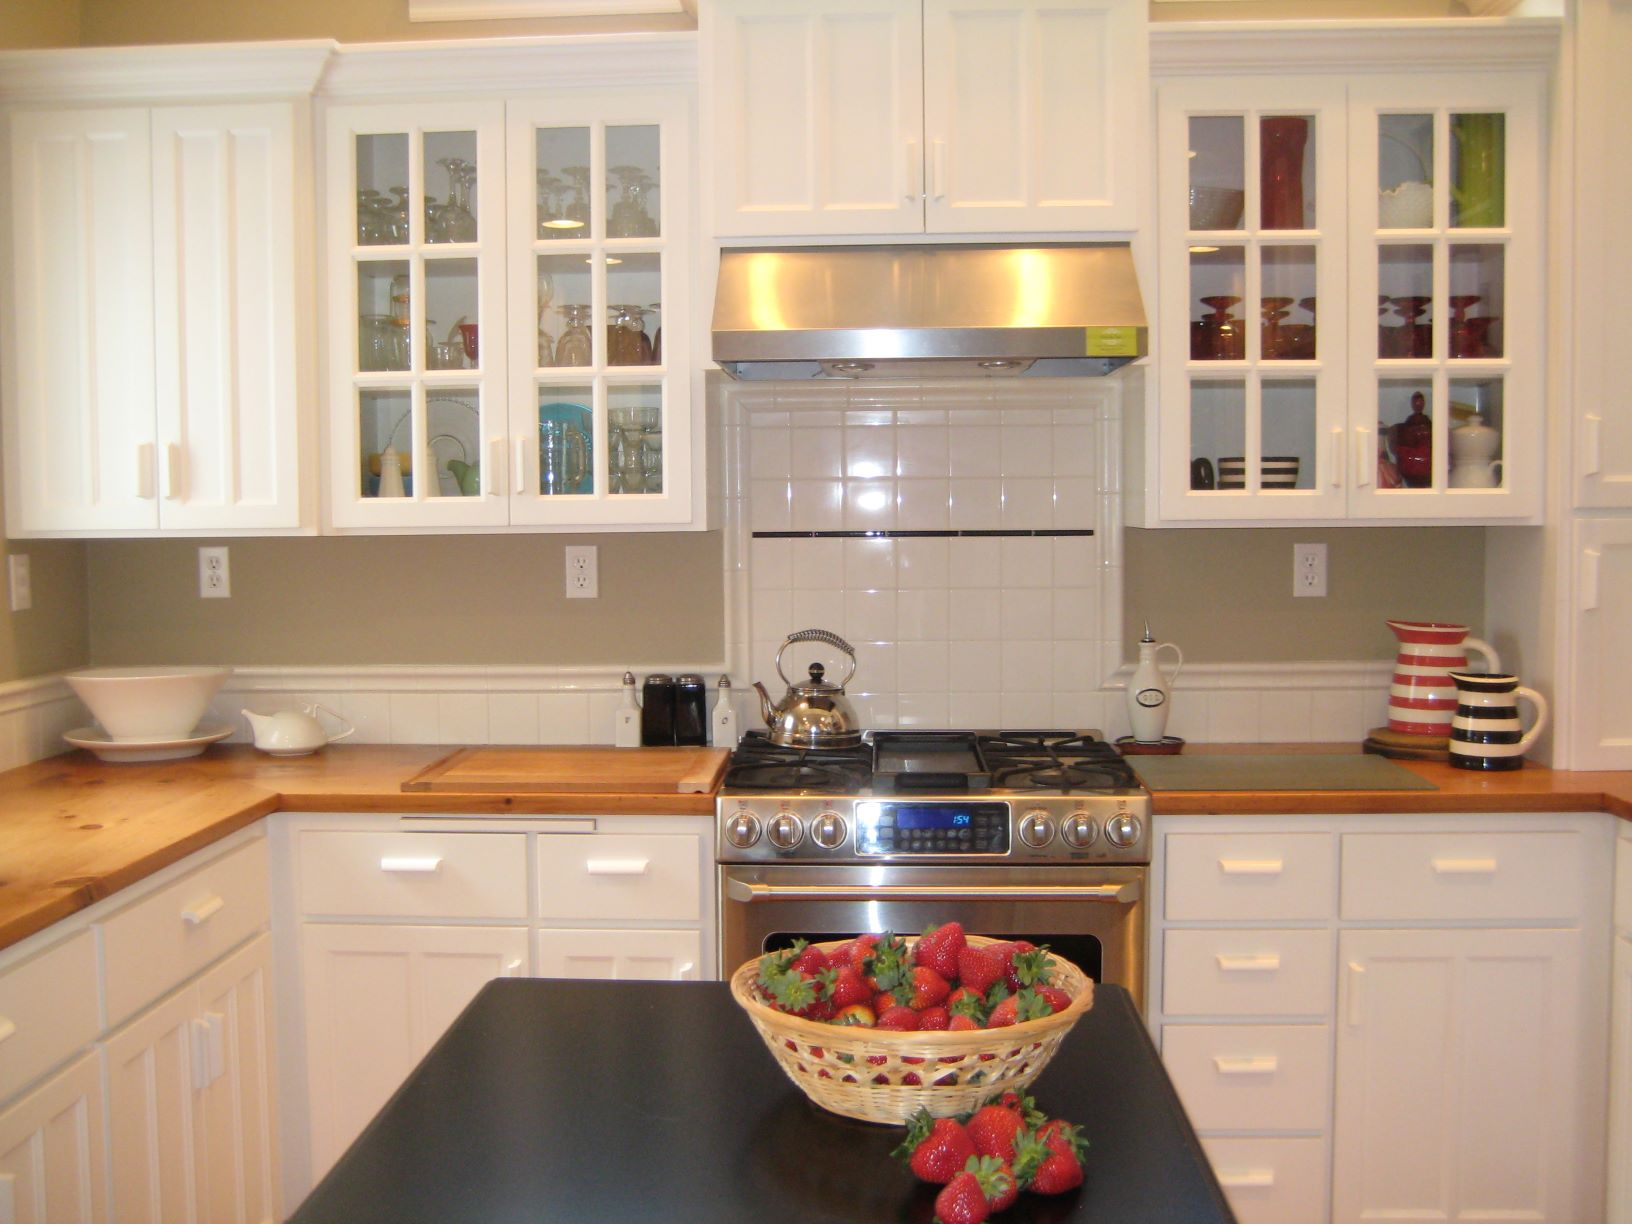 Innovative kitchen remodeling ideas include blind corner optimizers to maximize storage in corner cabinets.